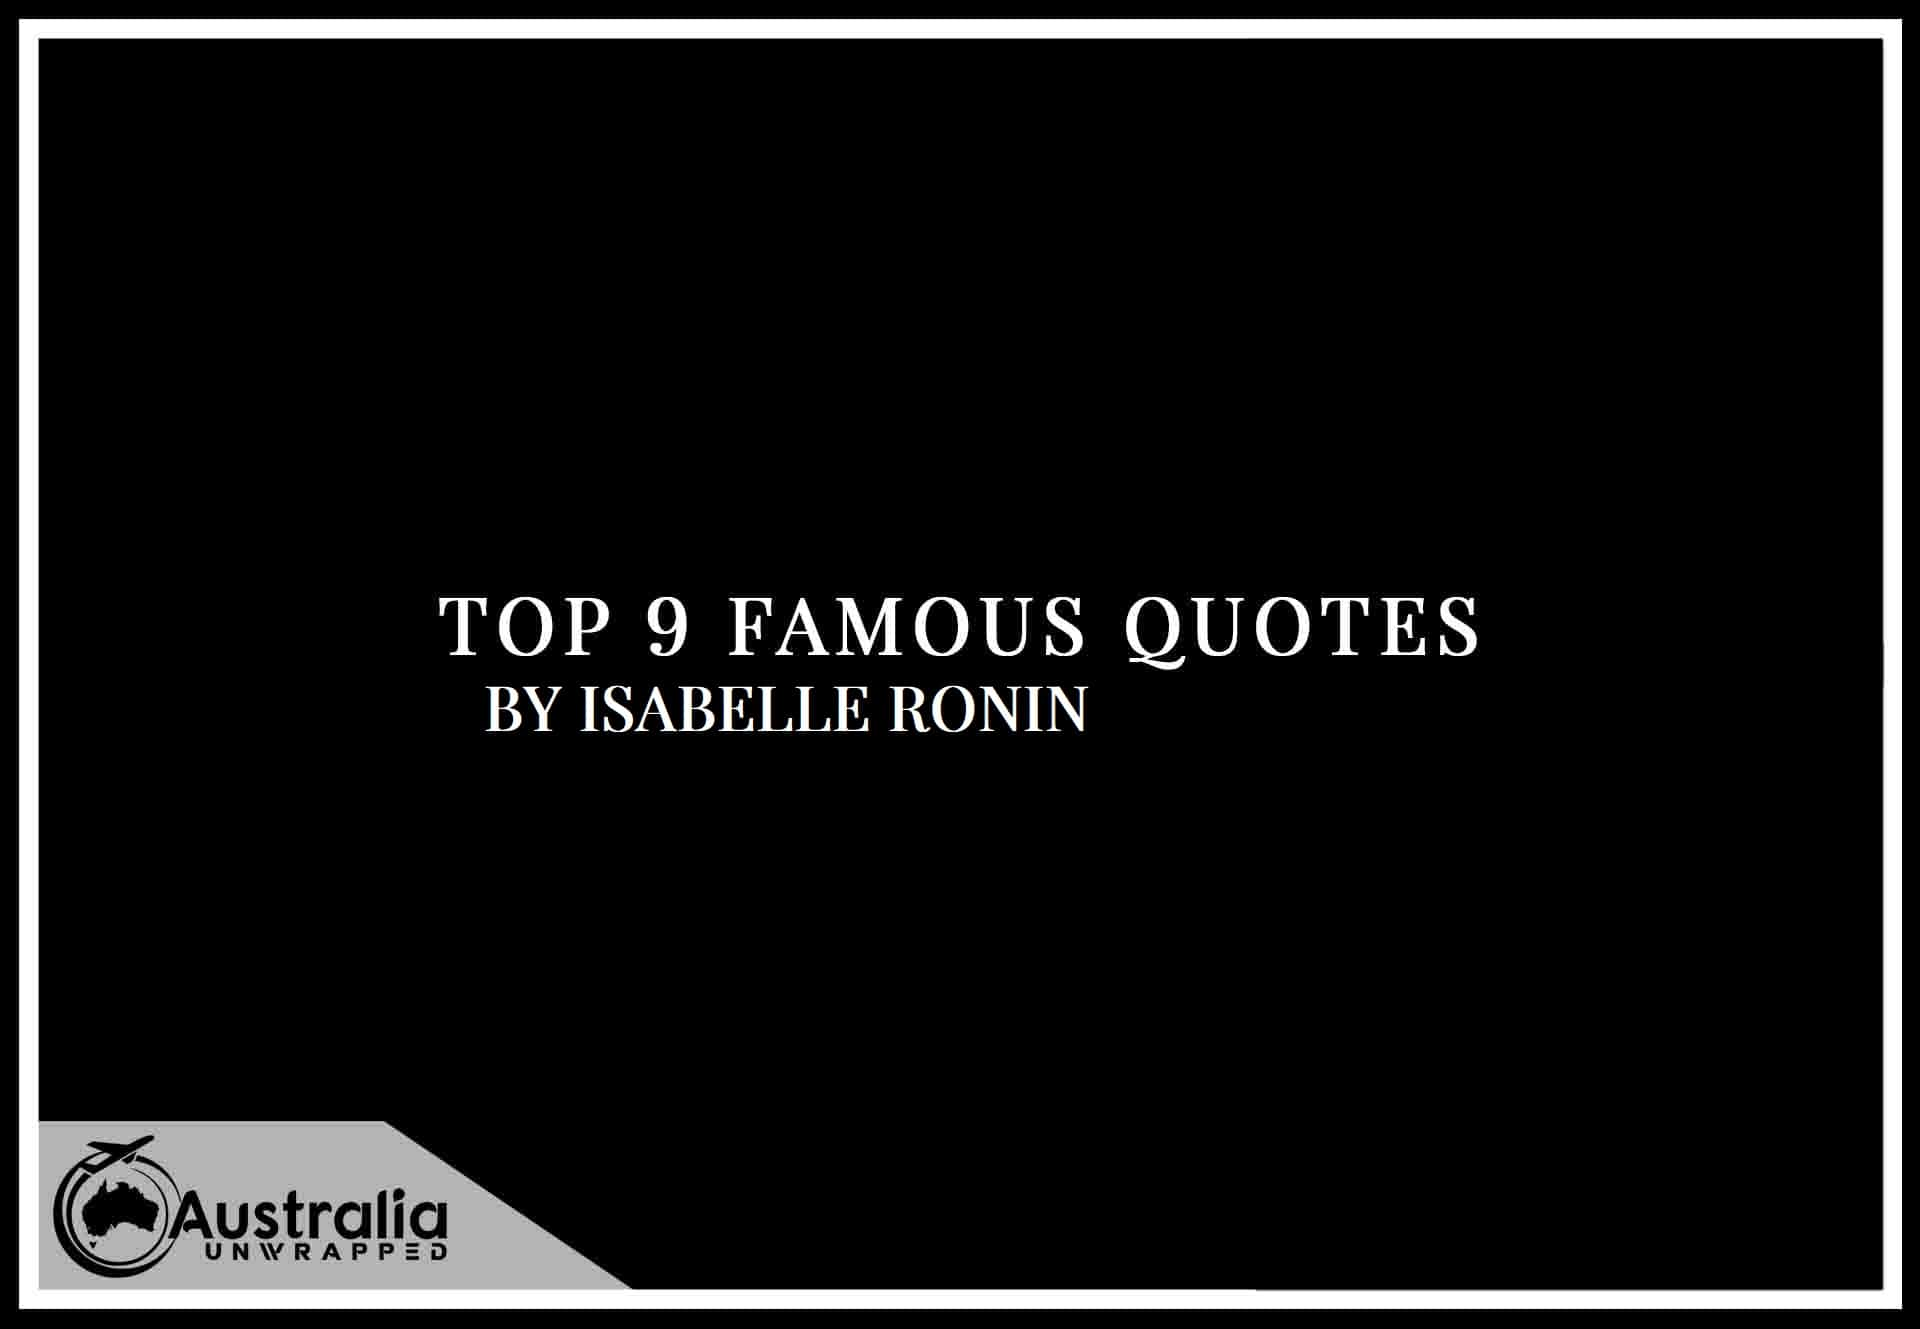 Top 9 Famous Quotes by Author Isabelle Ronin